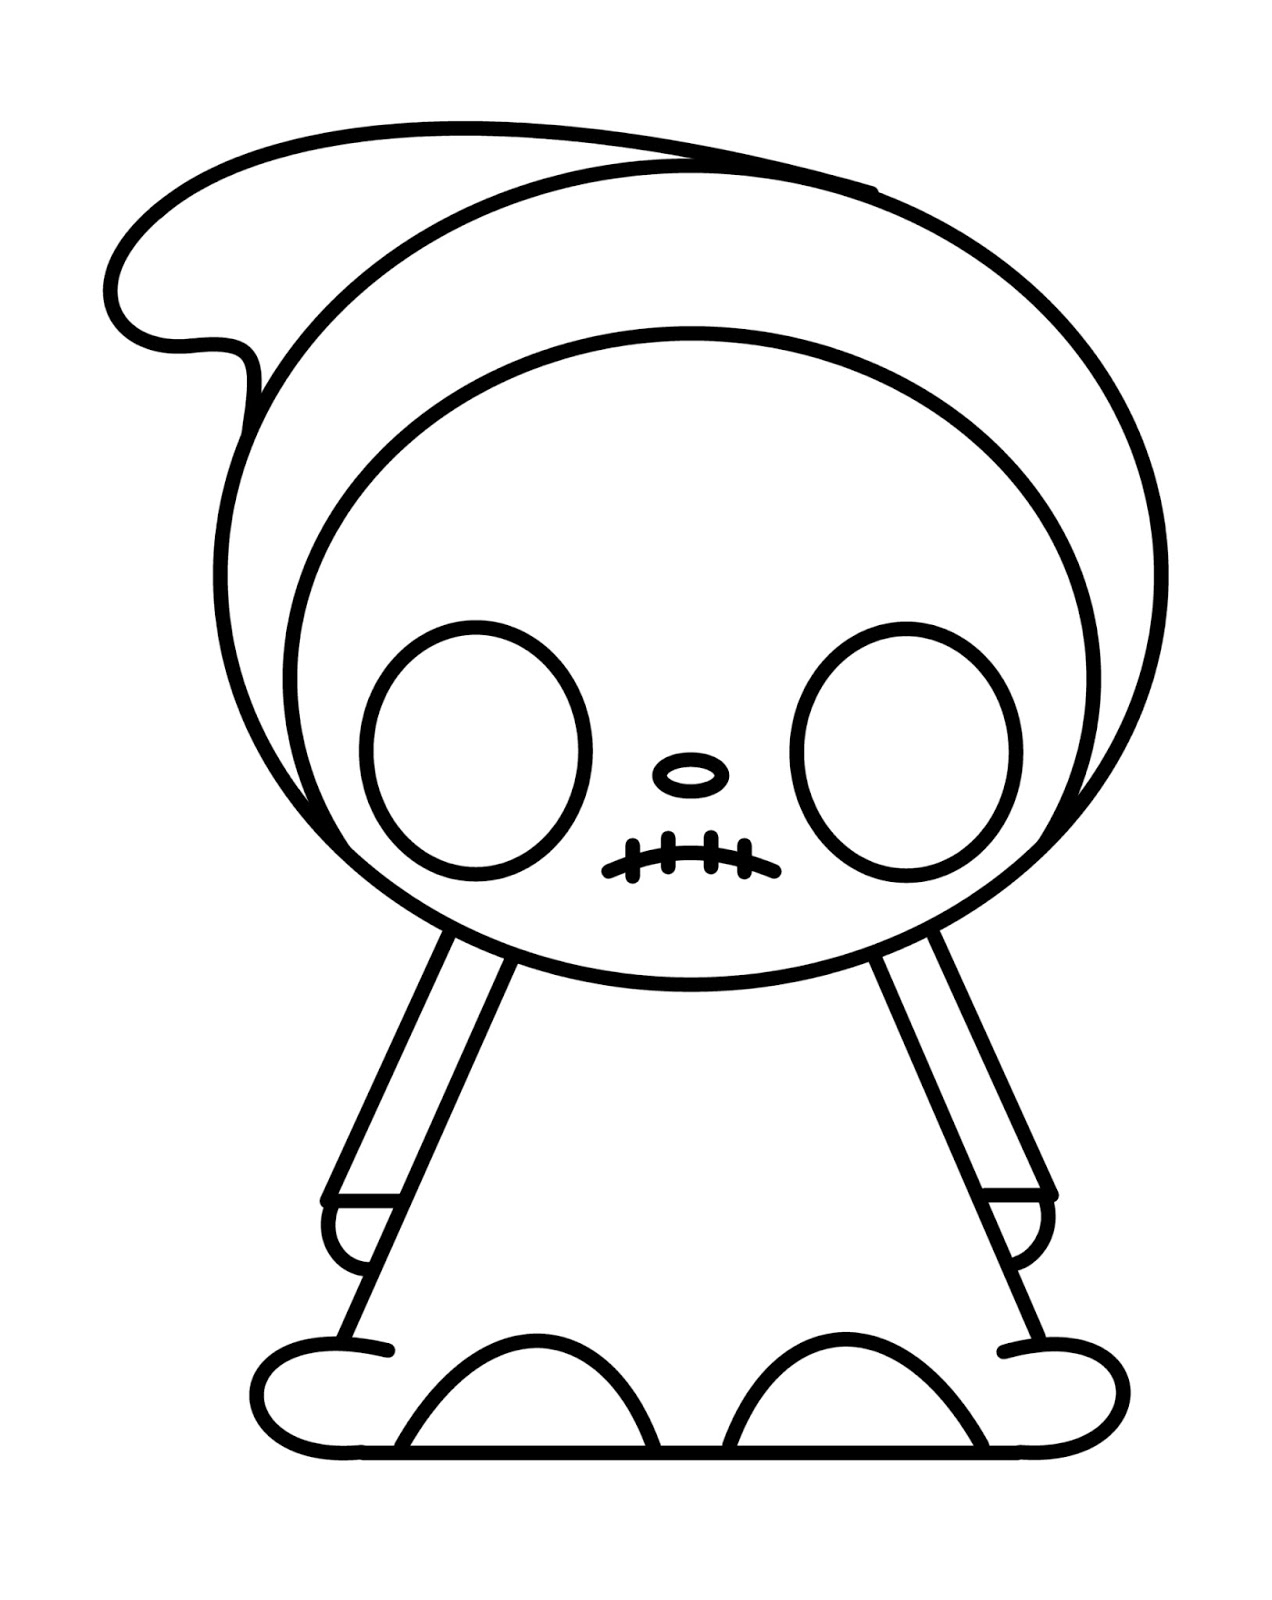 1272x1600 Pictures Cute Emo Drawings Easy,